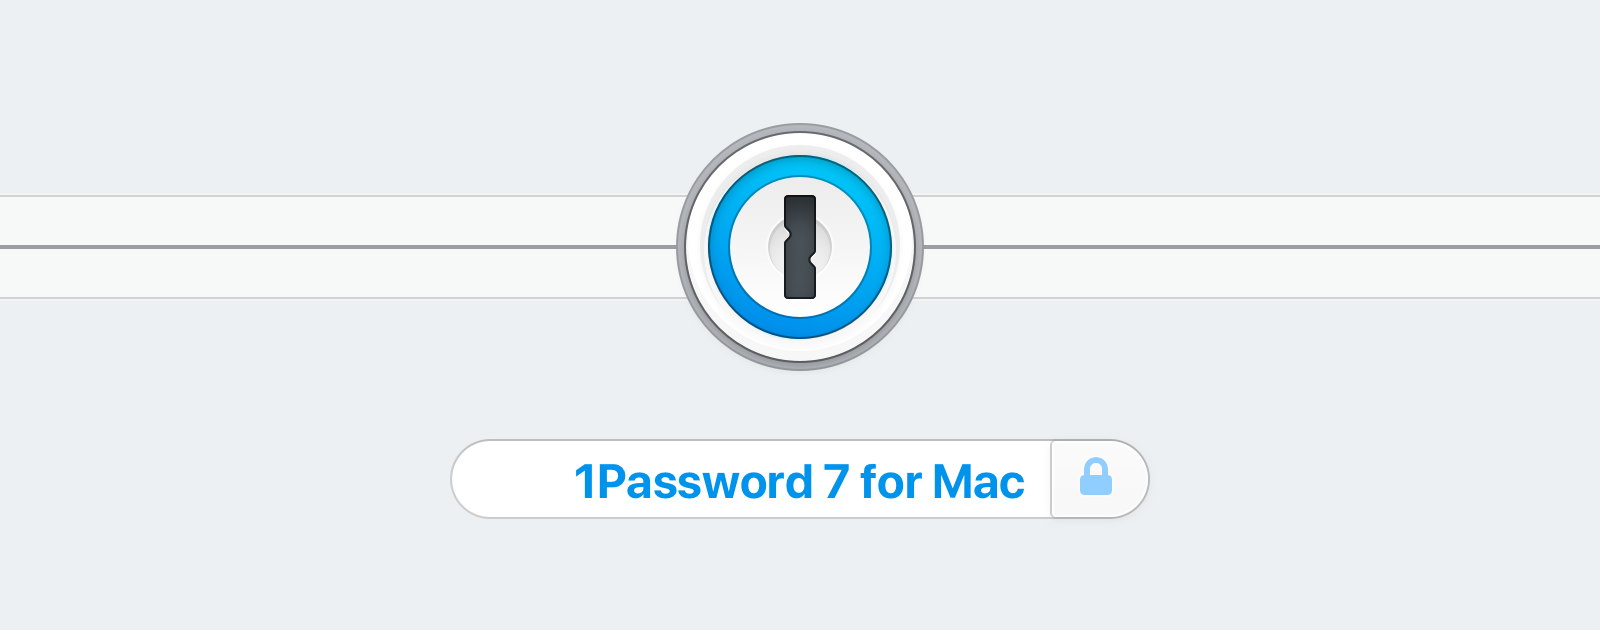 Image of 1password 7 for mac